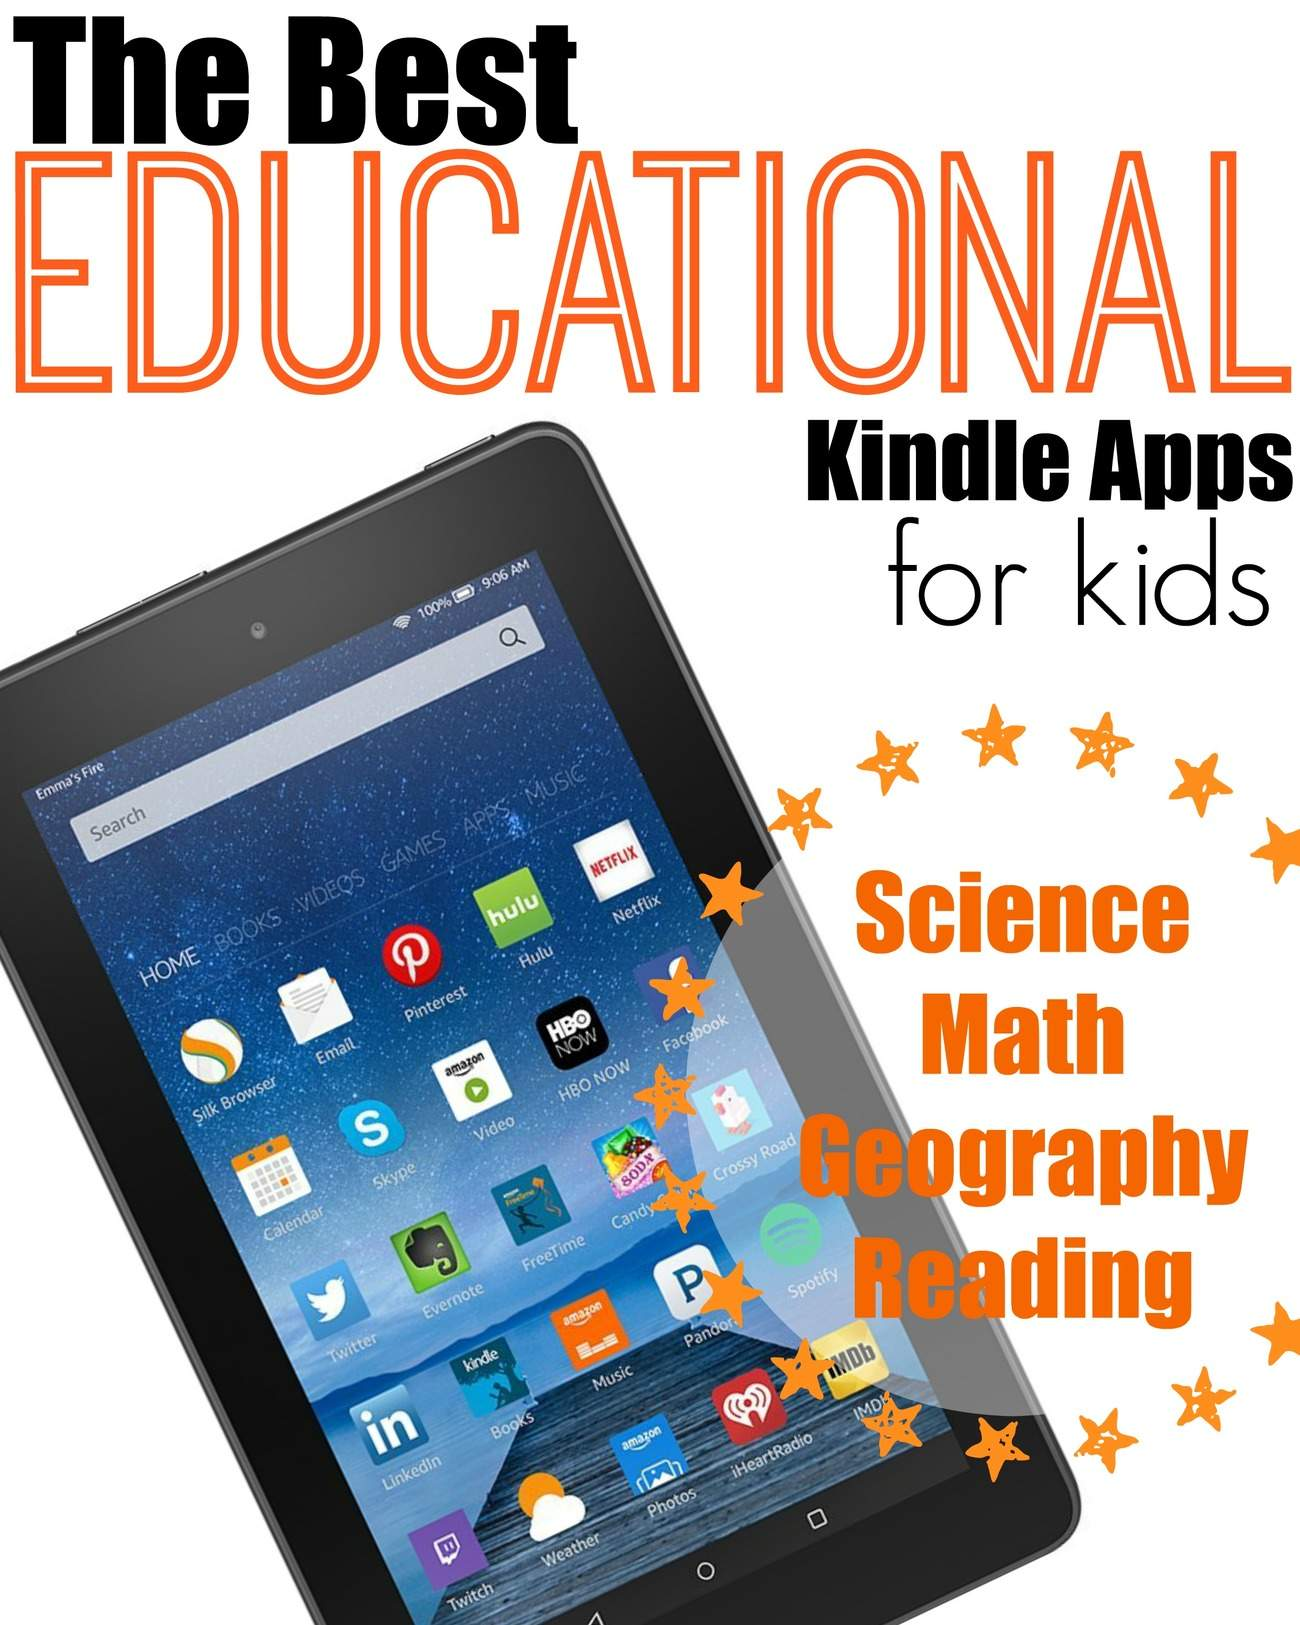 Best Educational Kindle Apps For Kids Only Passionate Curiosity